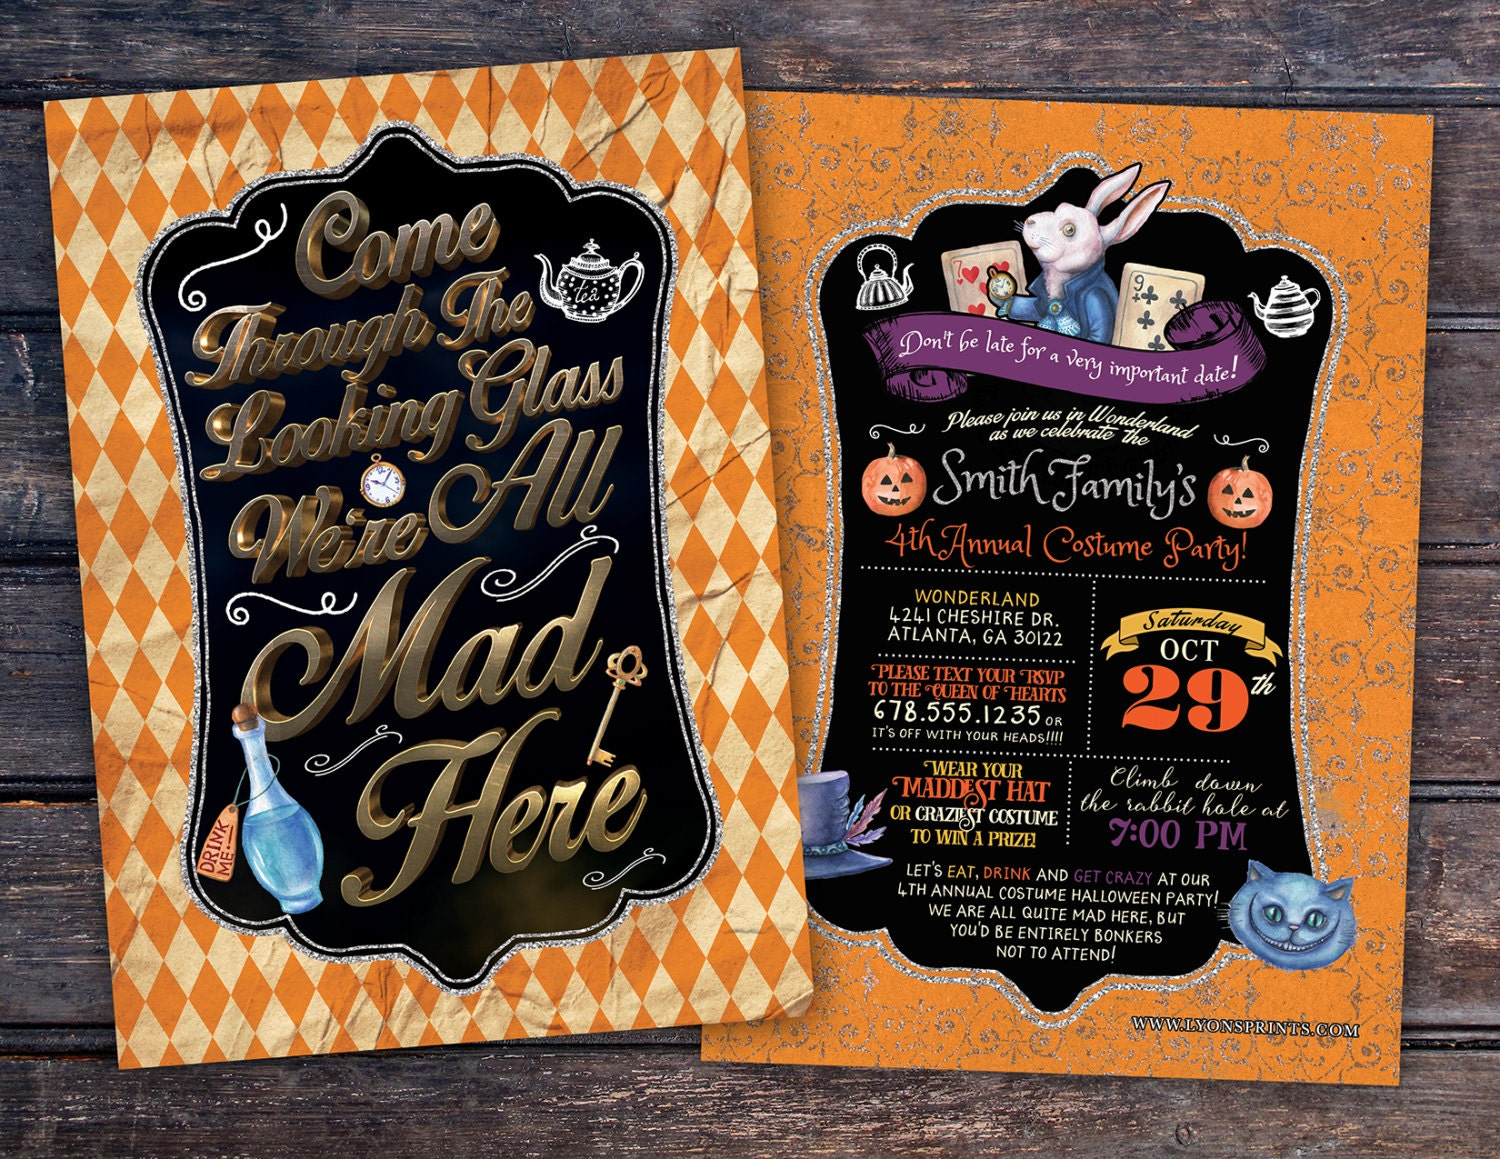 Halloween party mad hatter tea party alice in wonderland halloween party mad hatter tea party alice in wonderland invitation birthday invitation costume party invitation invite kids party stopboris Choice Image